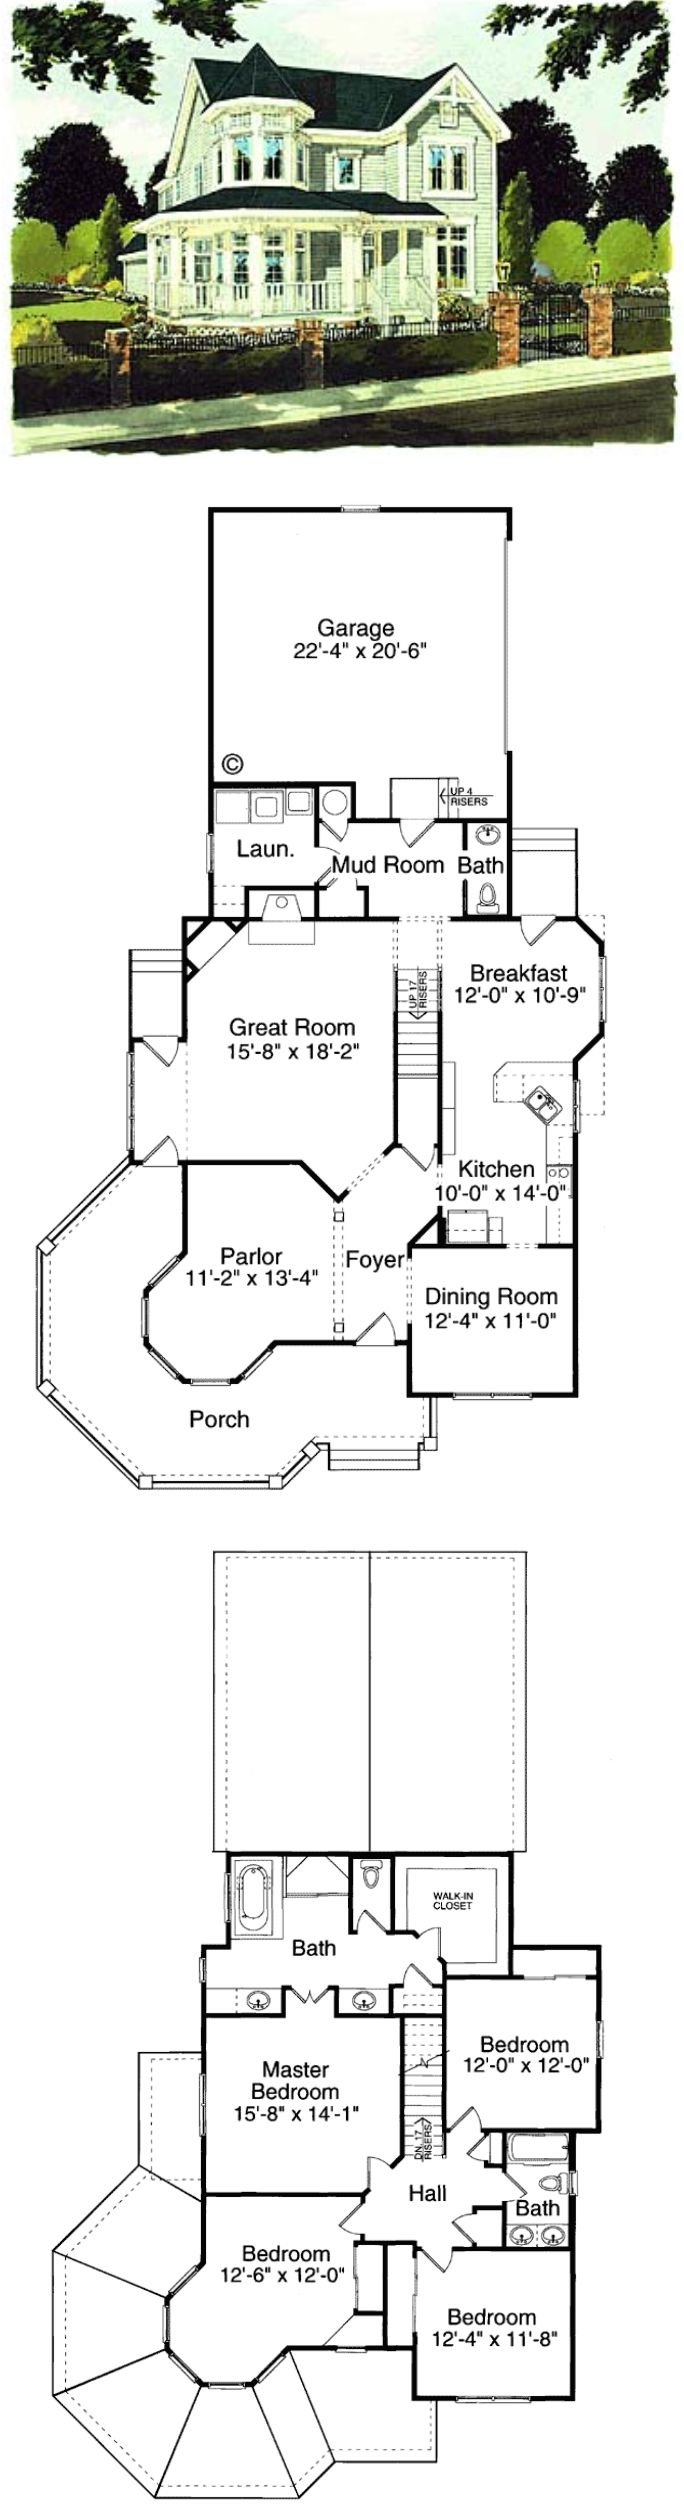 25 best ideas about victorian house plans on pinterest house layout plans mansion floor - Large victorian house plans ...